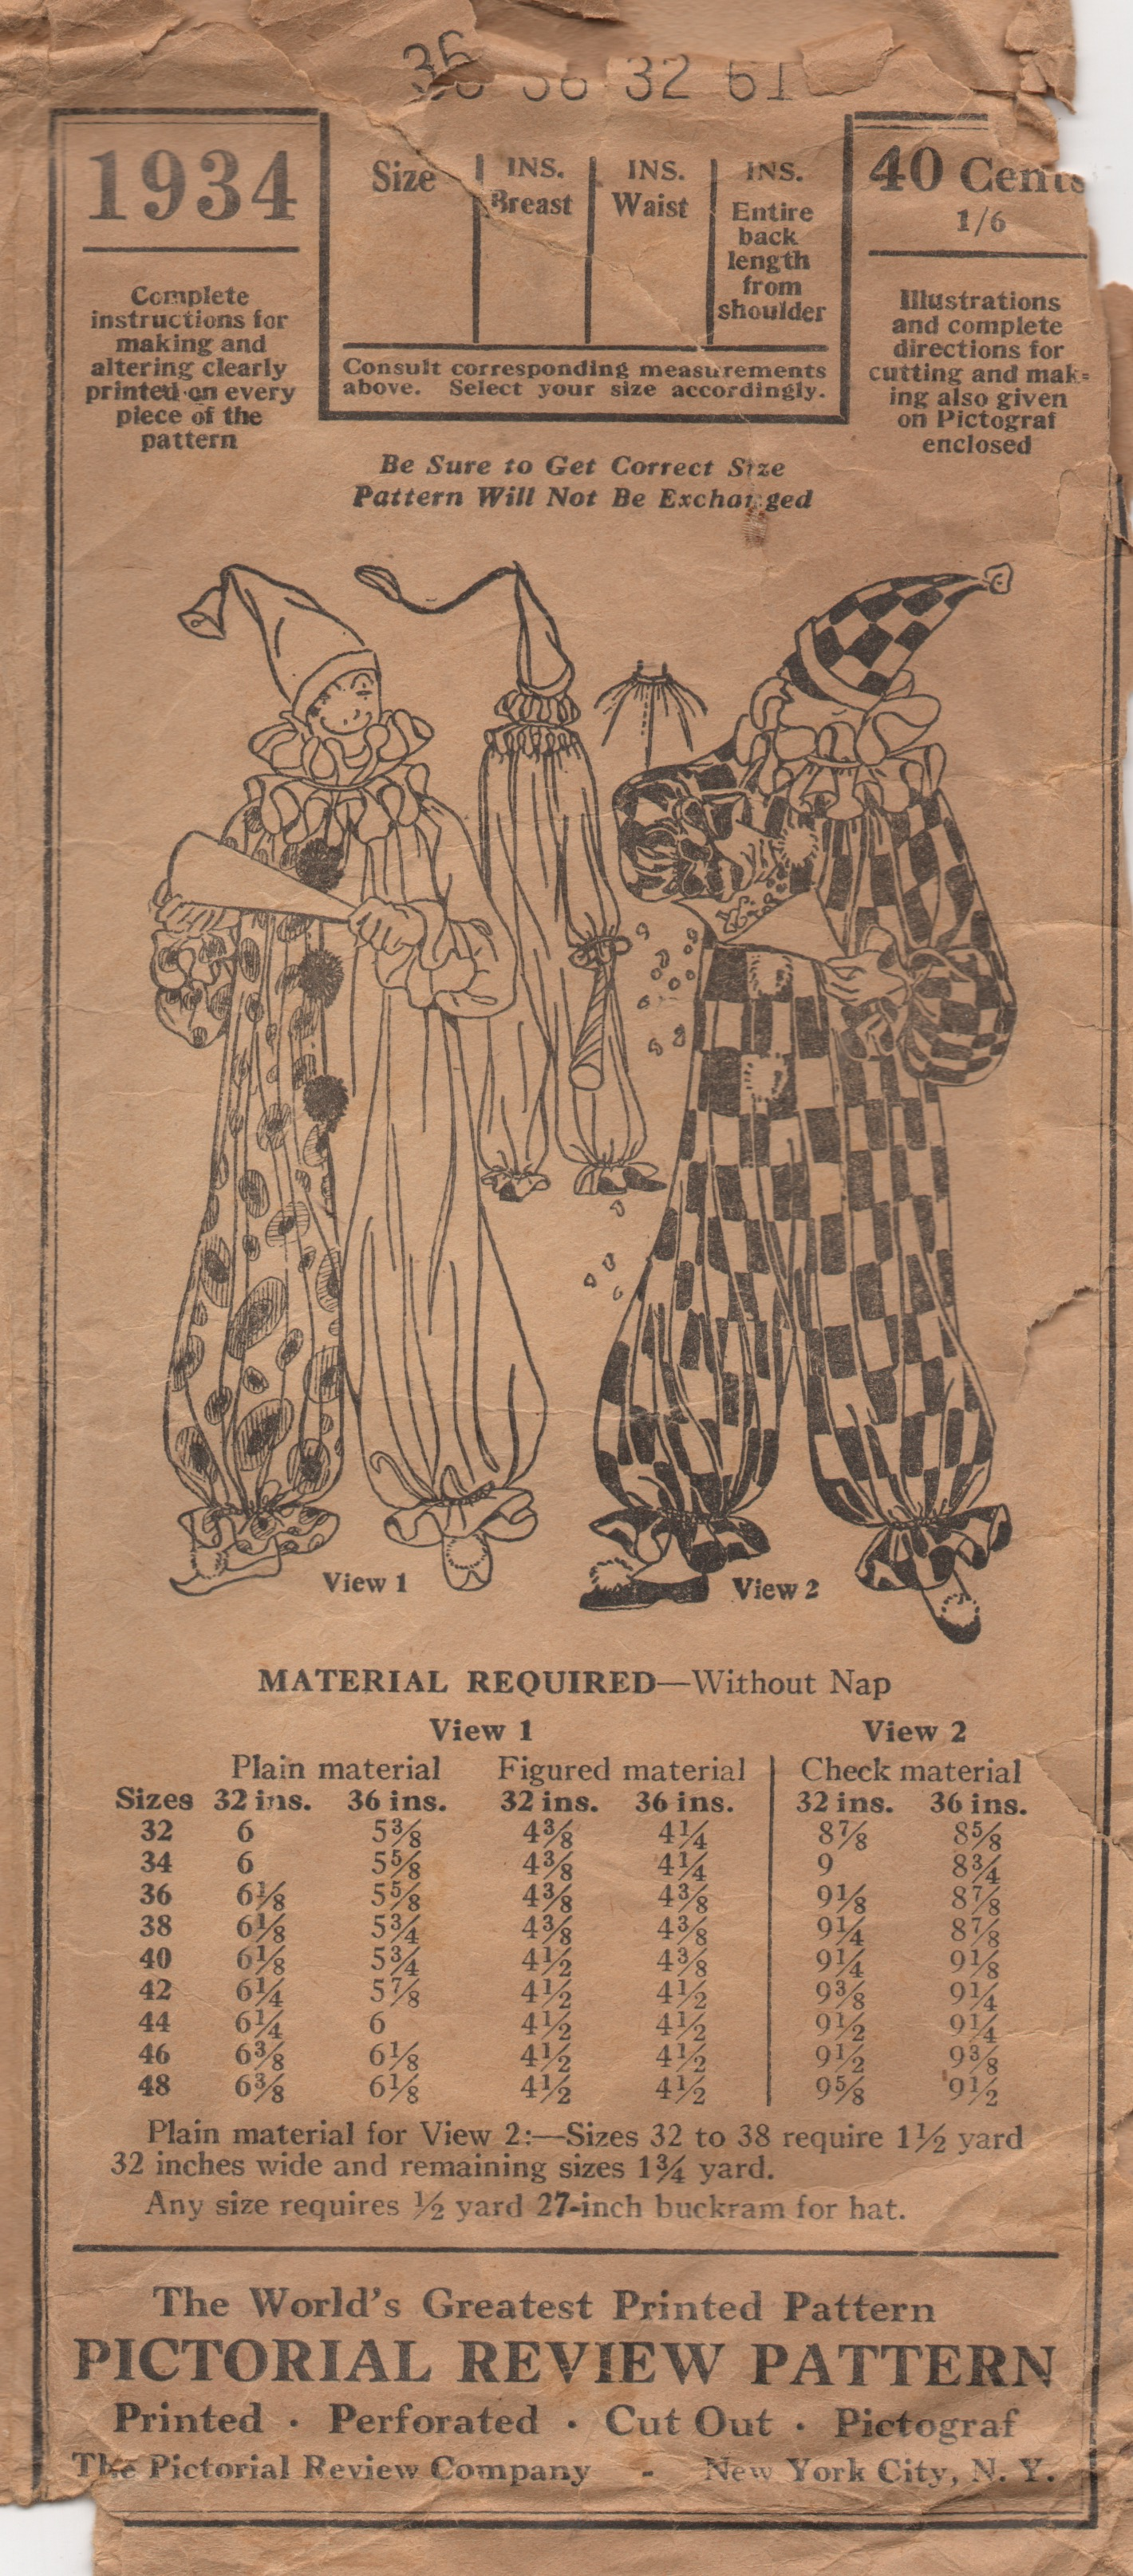 Pictorial Review 1934